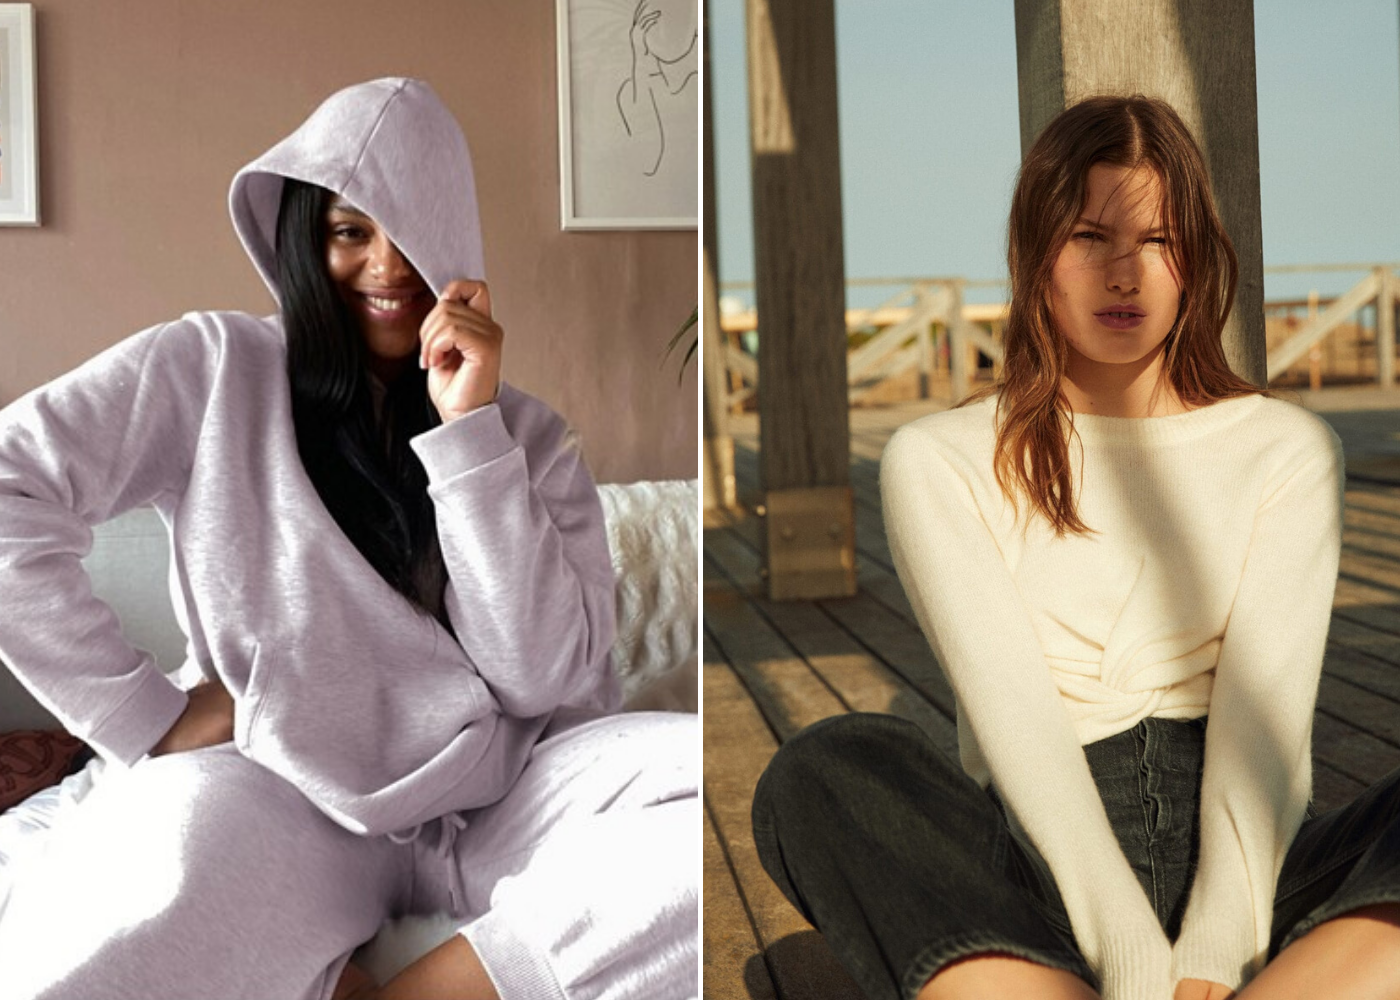 sweater | Stay-in outfits for lounging around the house